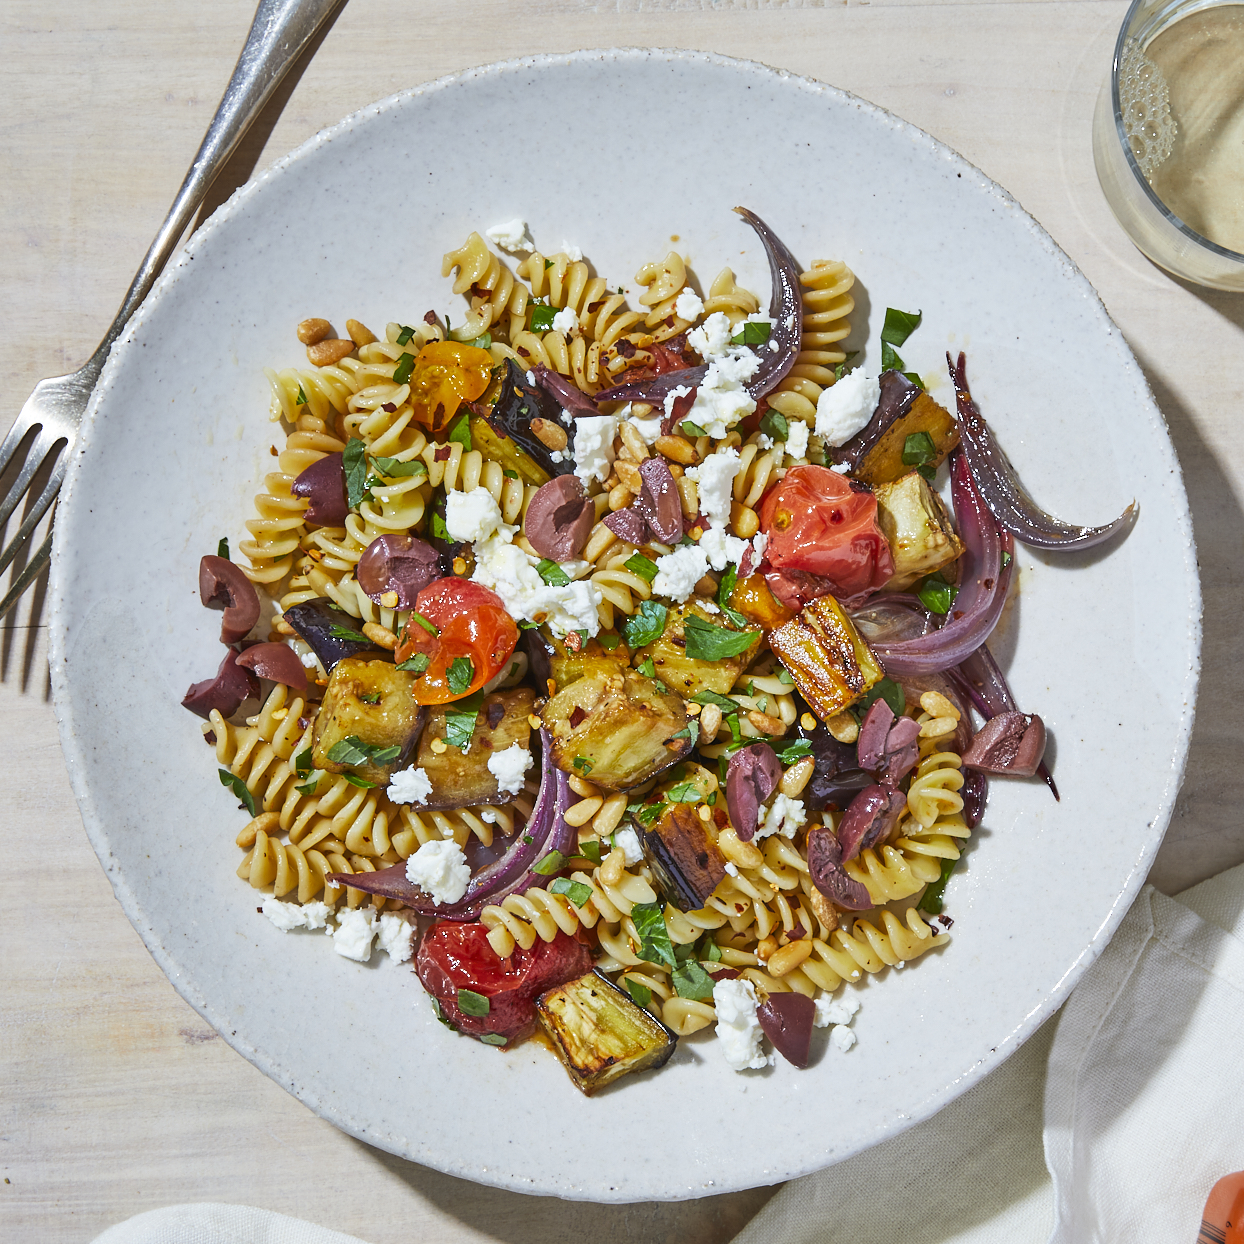 This easy roasted eggplant pasta dish is dressed with eggplant, fresh cherry tomatoes and plenty of fresh herbs. Feta cheese adds a savory note while the balsamic dressing brightens the flavor. It's the perfect summer vegetarian dinner. Source: EatingWell.com, May 2020